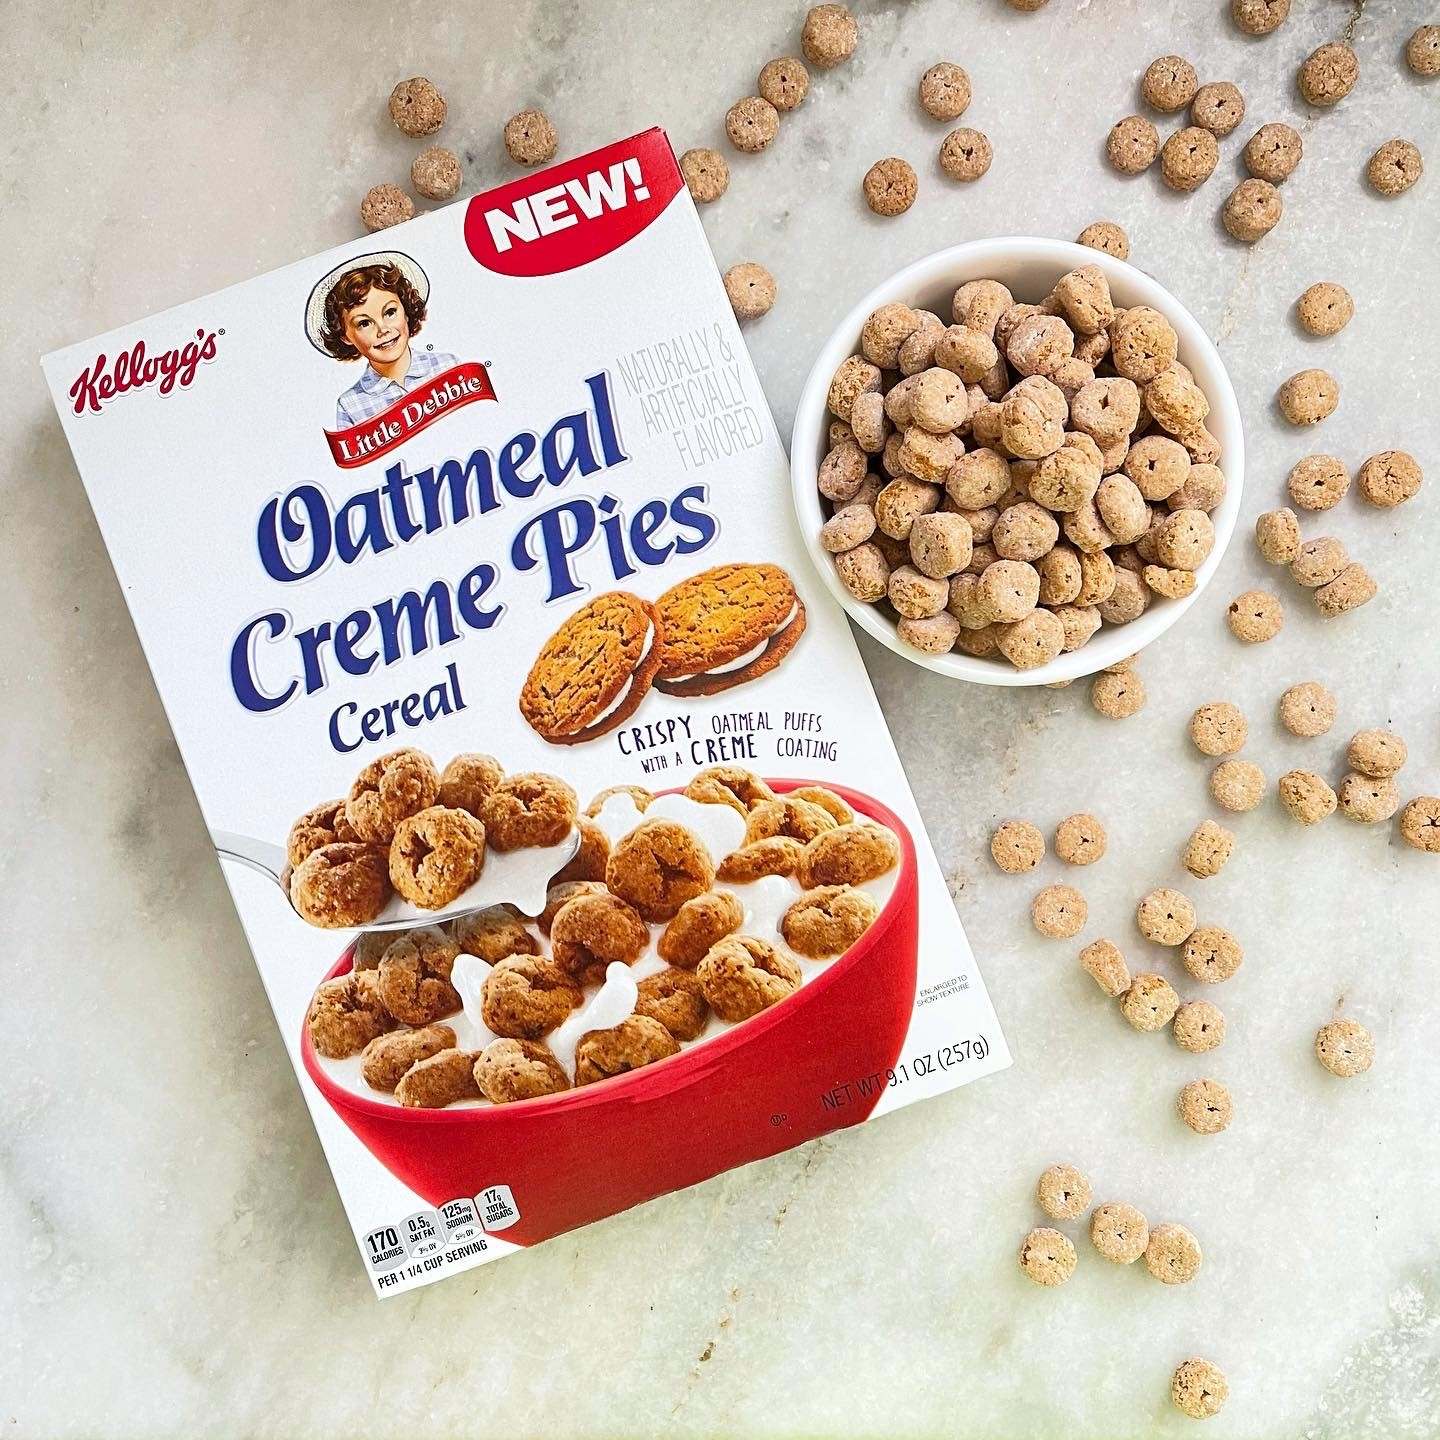 Kellogg's Little Debbie Oatmeal Creme Pies Cereal 1